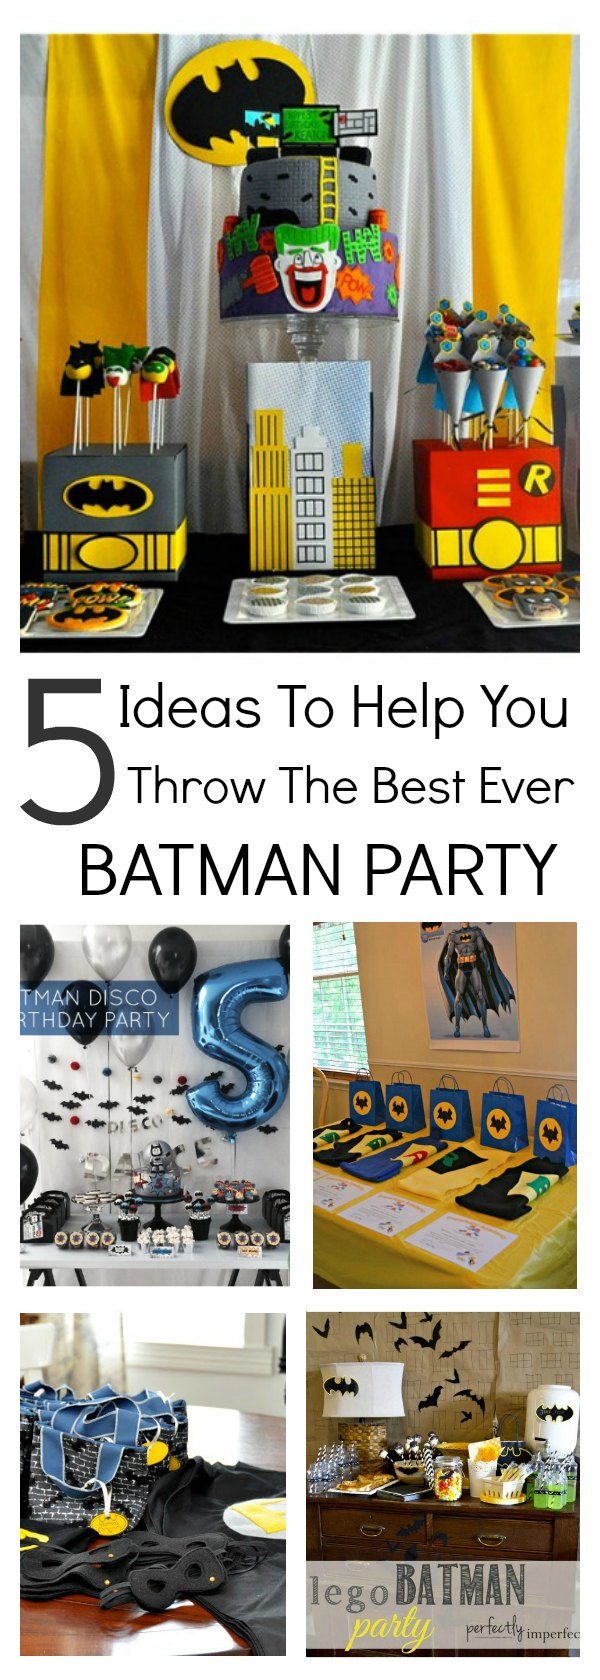 5 Ideas to help you throw the best ever batman party